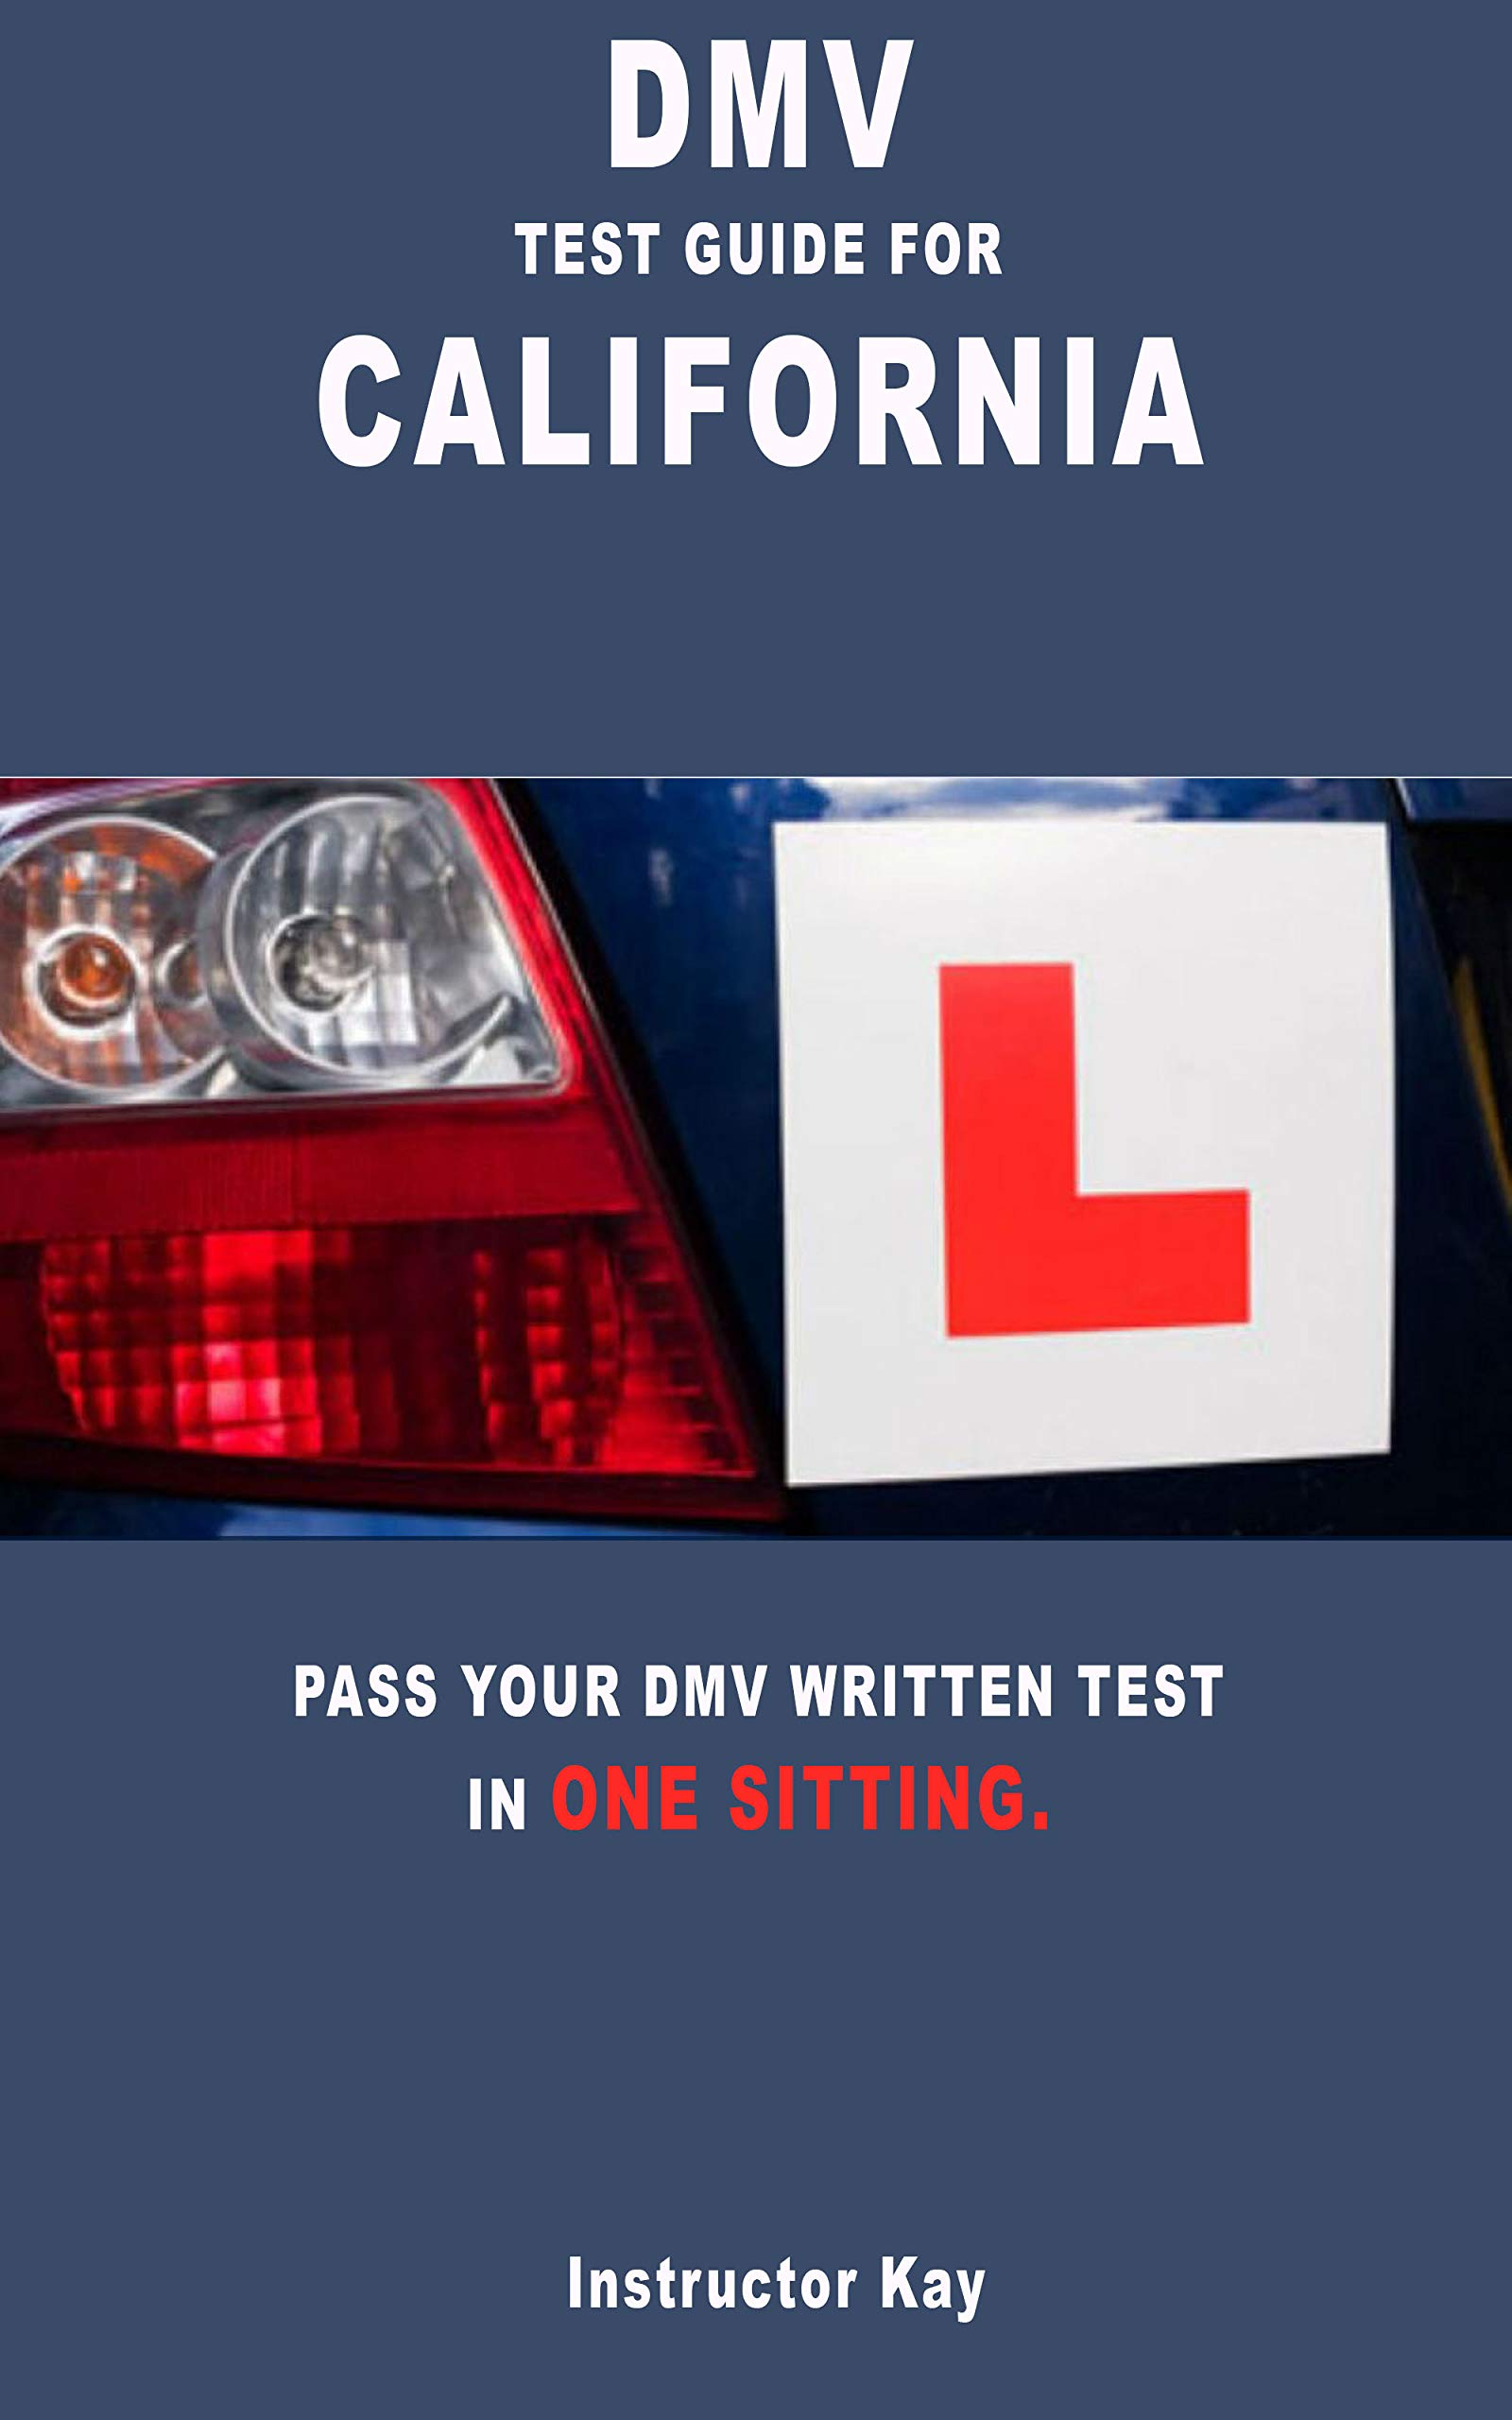 DMV TEST GUIDE FOR CALIFORNIA  PASS YOUR DMV WRITTEN TEST IN ONE SITTING  English Edition